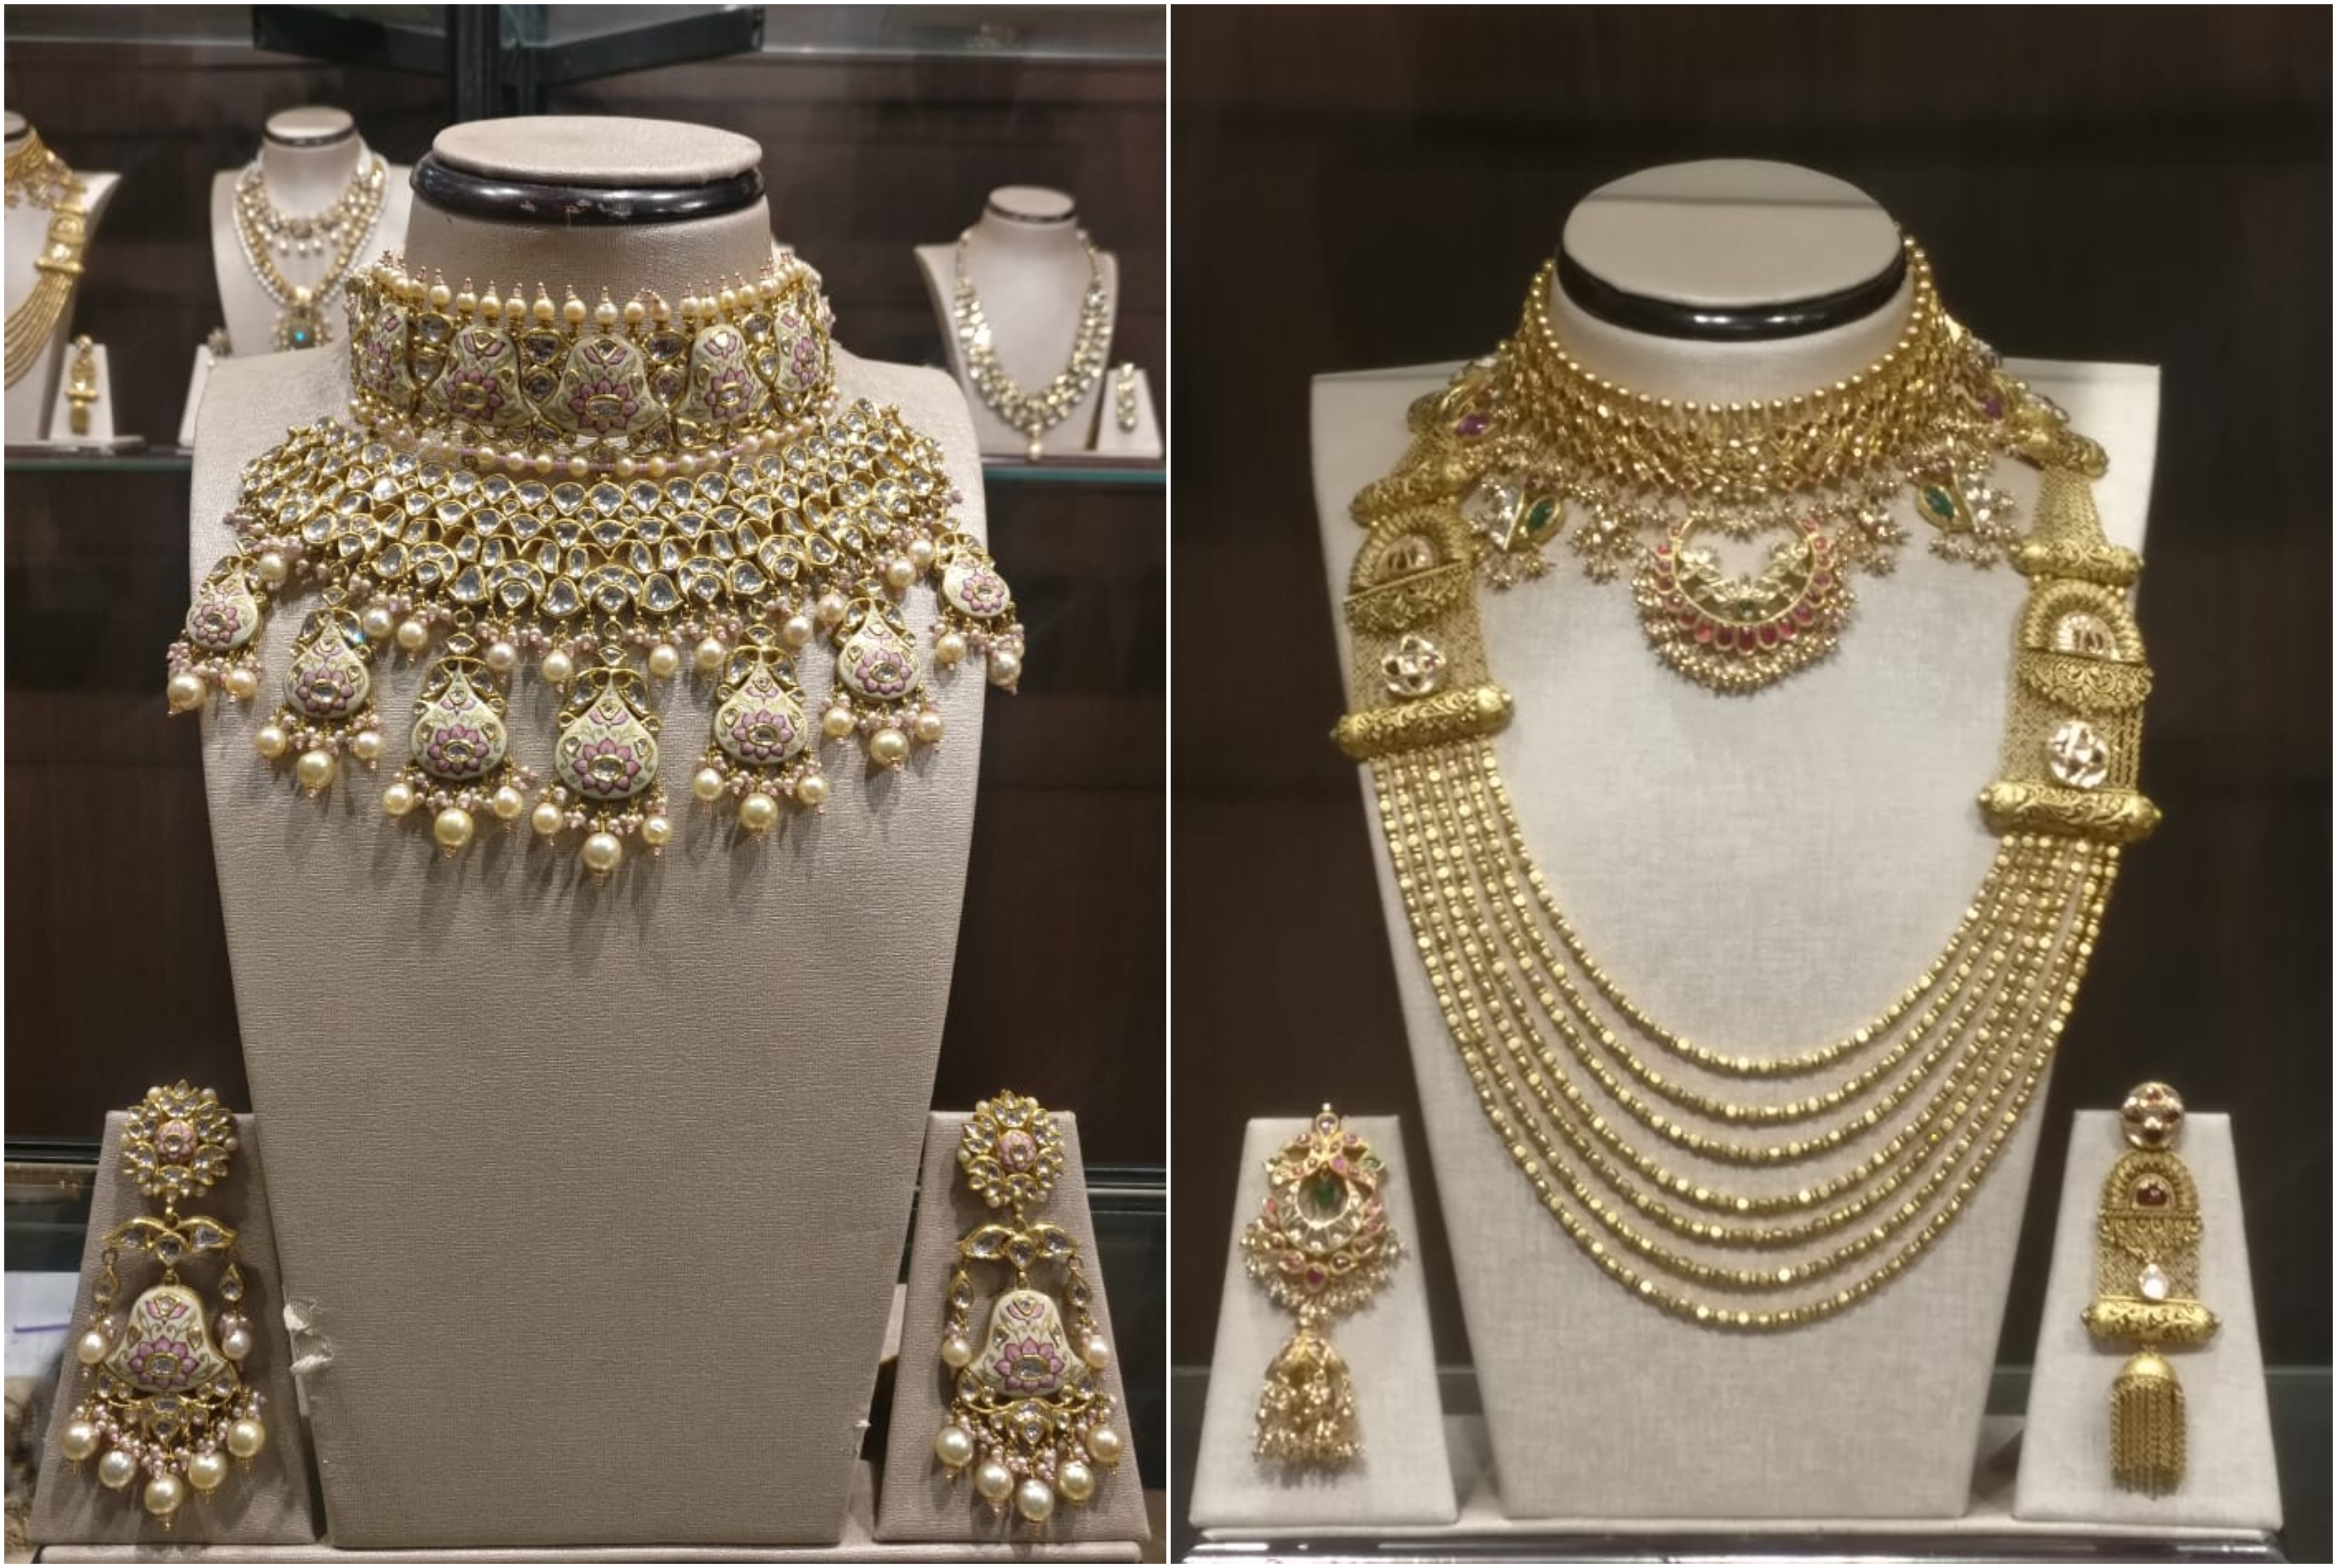 ciceroni- India Jewellery Show 2019 - Ahmedabad - Bridal jewellery shopping - jewellery shopping in Ahmedabad - Wedding shopping in Ahmedabad- Bridal jewellery- Wedding jewellery shopping - Ahmedabad - Mumbai -Surat